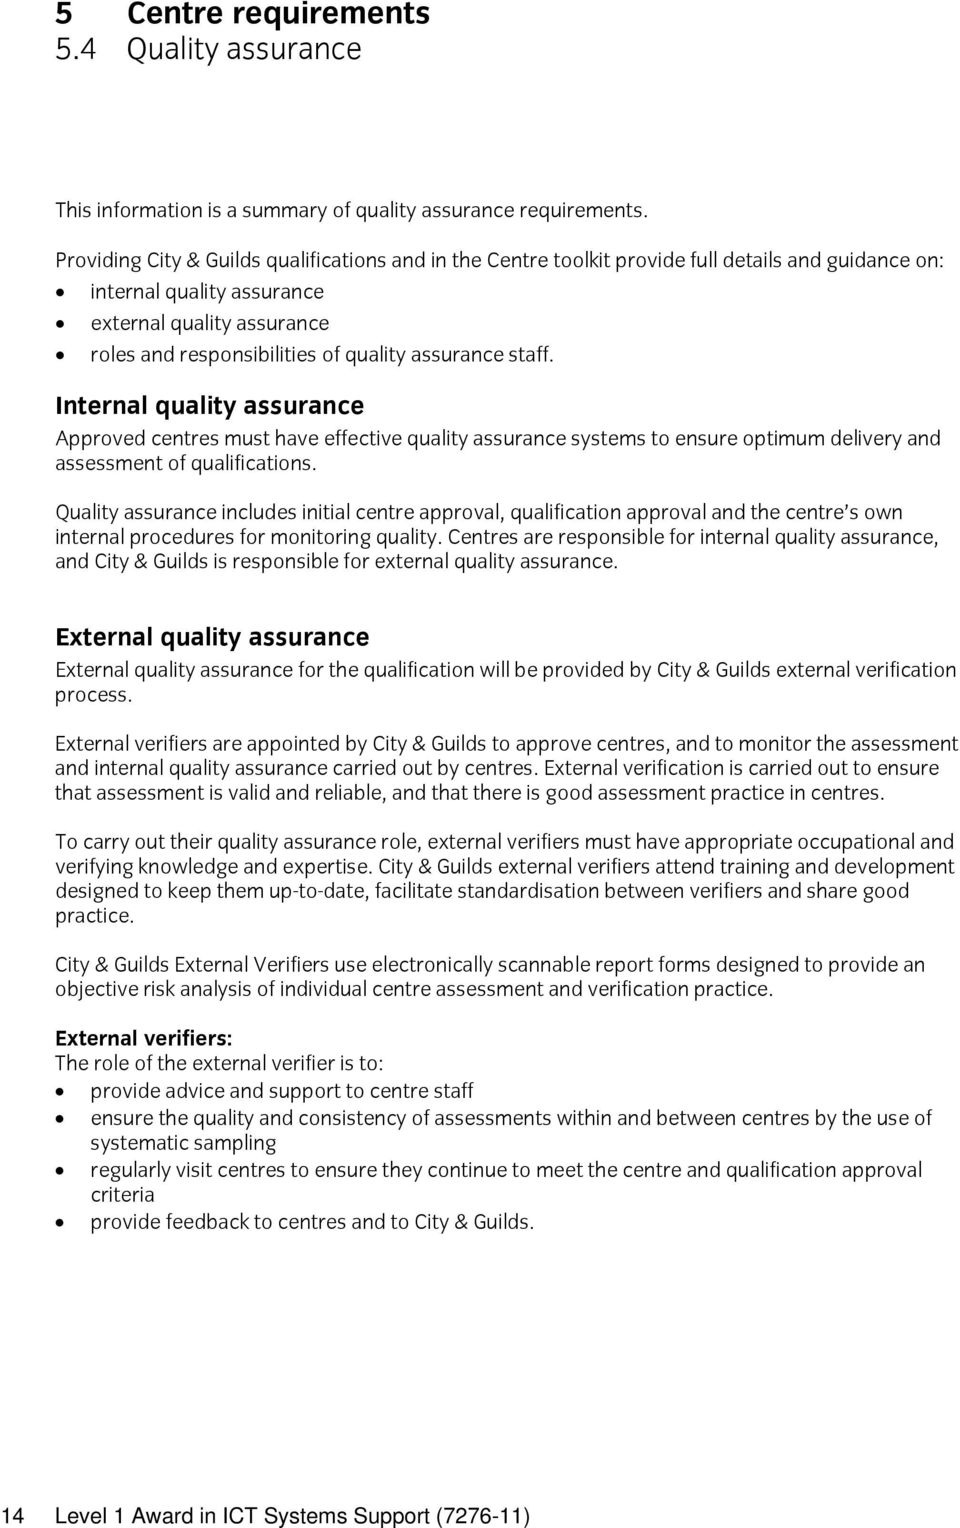 assurance staff. Internal quality assurance Approved centres must have effective quality assurance systems to ensure optimum delivery and assessment of qualifications.